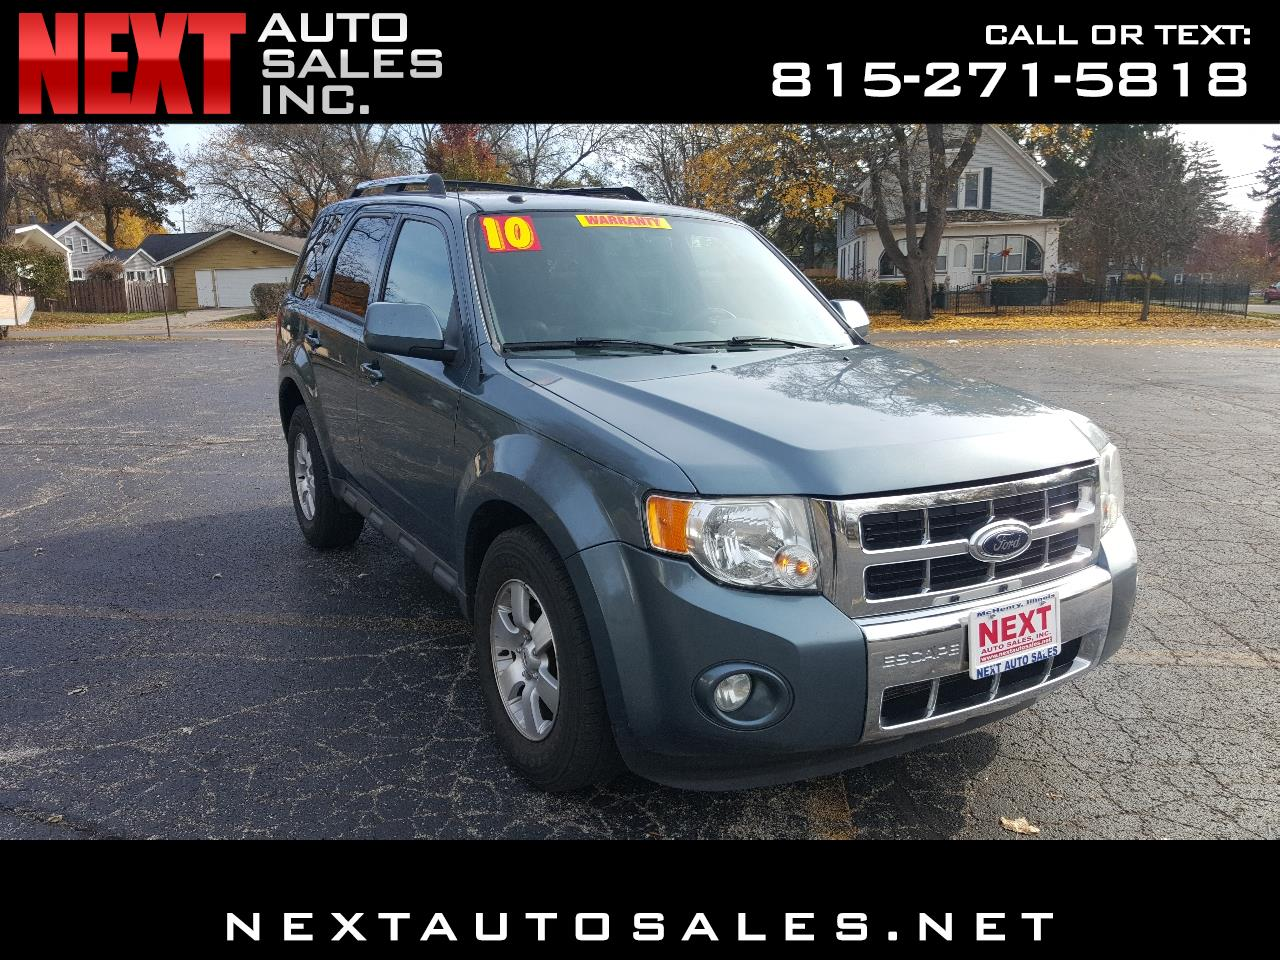 2010 Ford Escape 4WD 4dr Limited